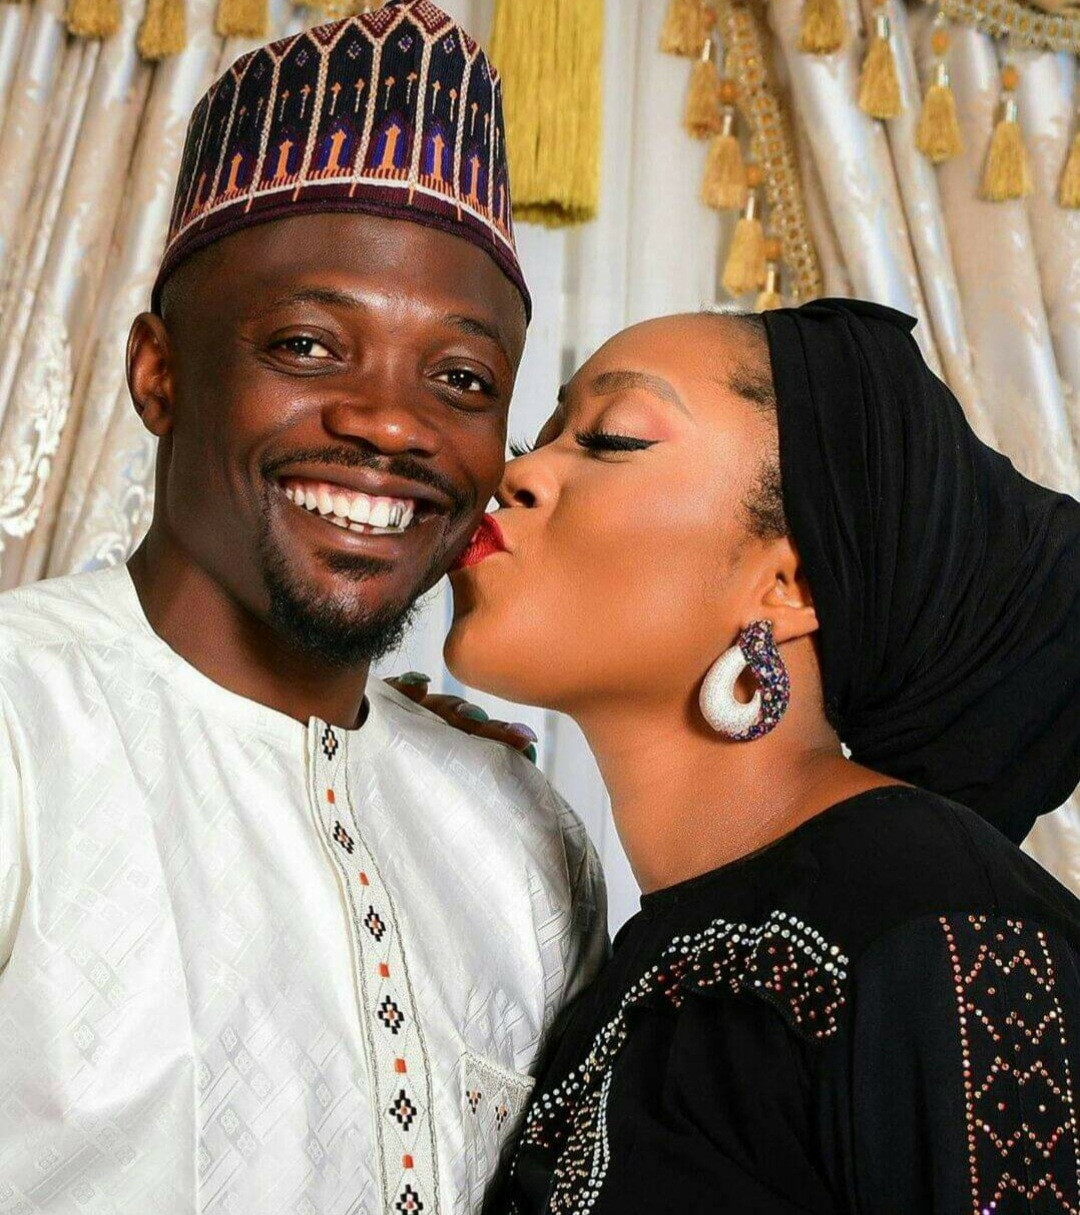 Muslim Fans call out  Ahmed Musa over photo shared on Social Media